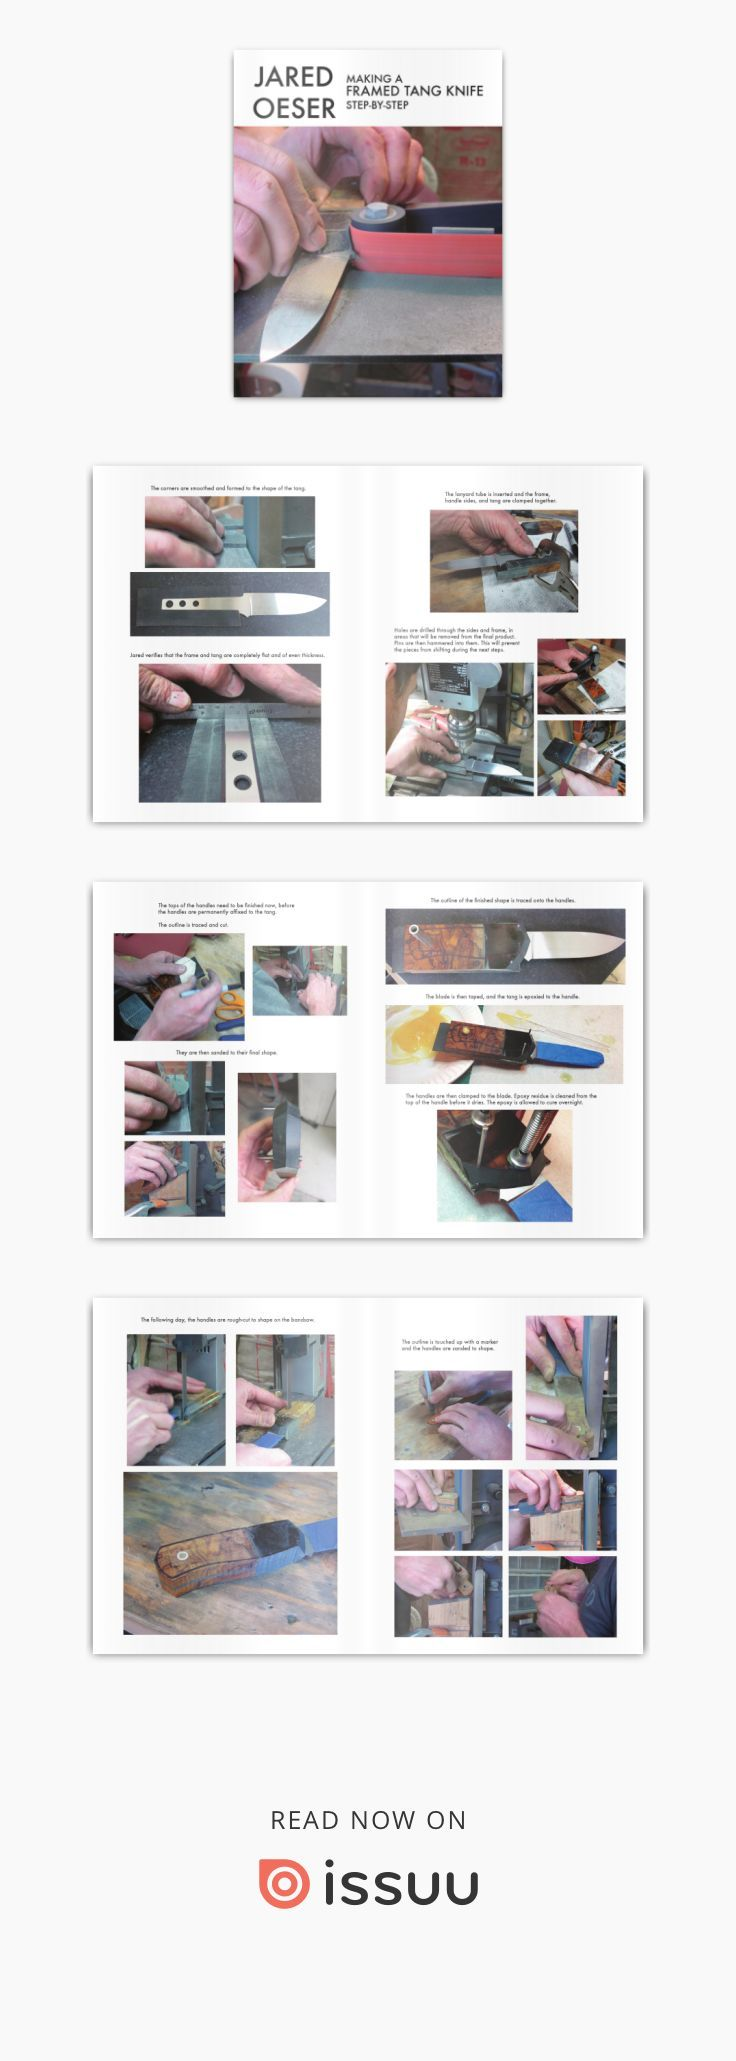 Issuu is a digital publishing platform that makes it simple to publish magazines, catalogs, newspapers, books, and more online. Easily share your publications and get them in front of Issuu's millions of monthly readers. Title: Jared Oeser: Making a Framed Tang Knife Step by Step, Author: Dan Bergevin, Name: Jared Oeser: Making a Framed Tang Knife Step by Step, Length: 50 pages, Page: 1, Published: 2014-03-29